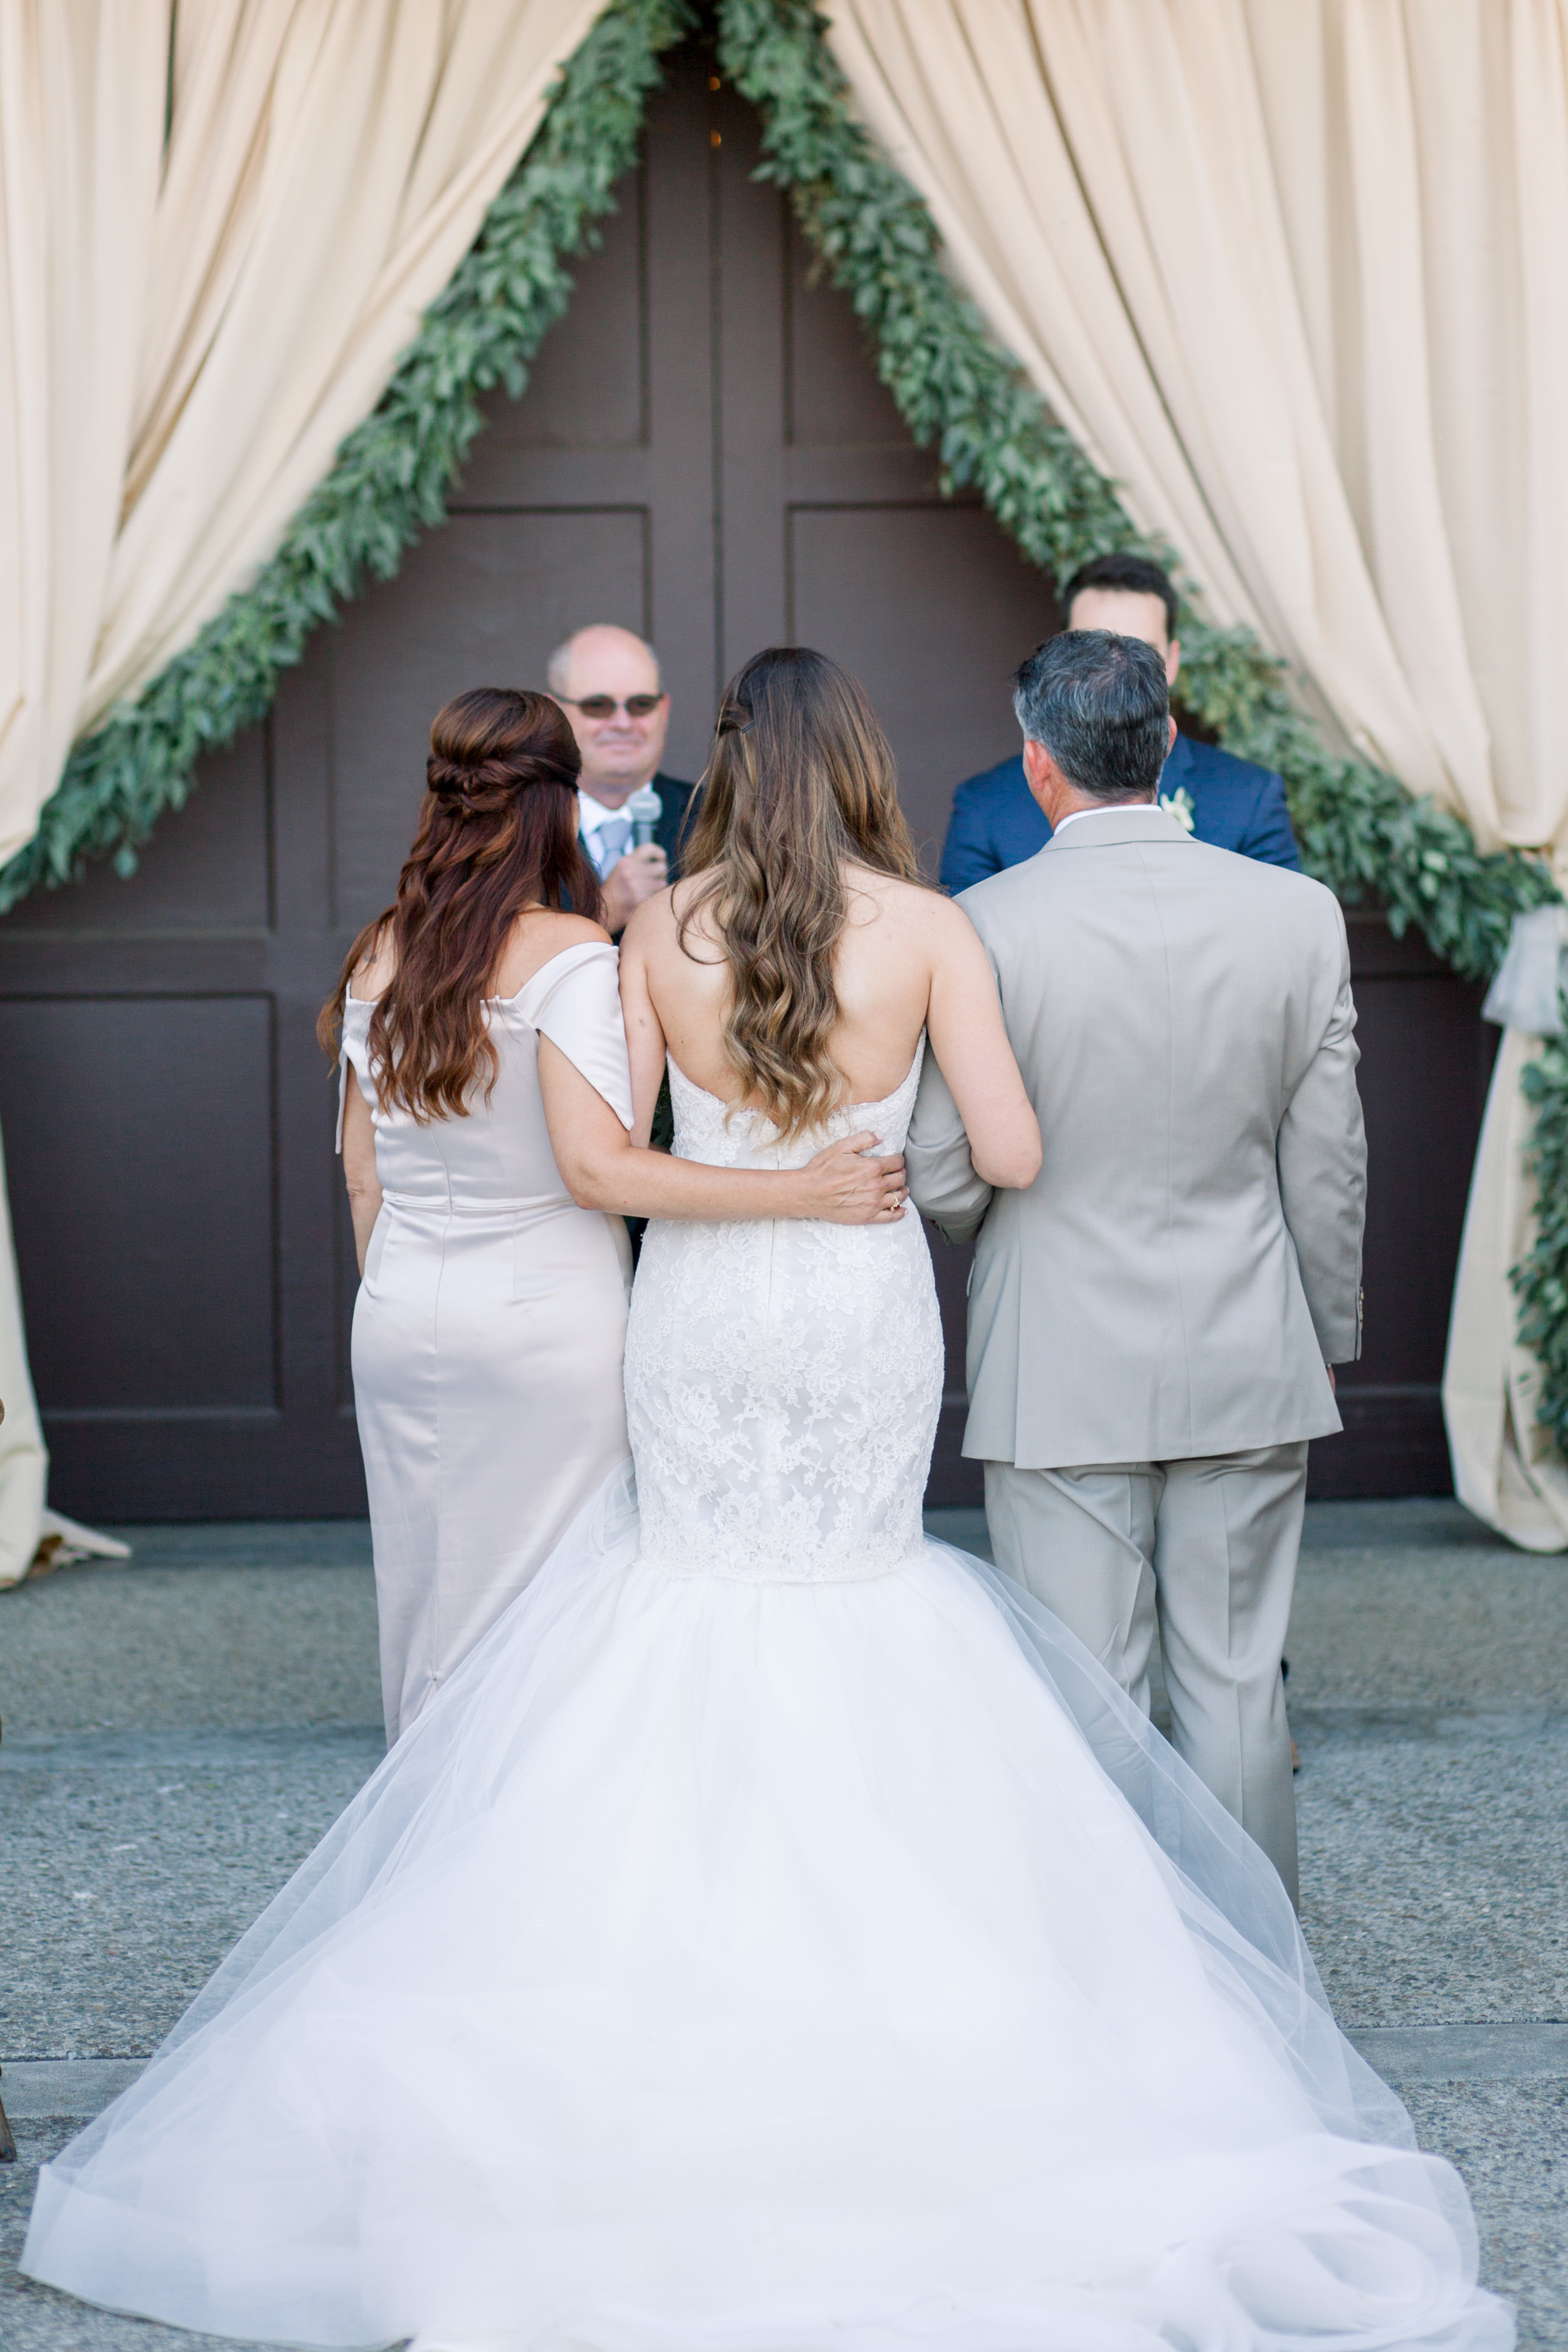 muriettas-well-wedding-in-livermore-california-24.jpg